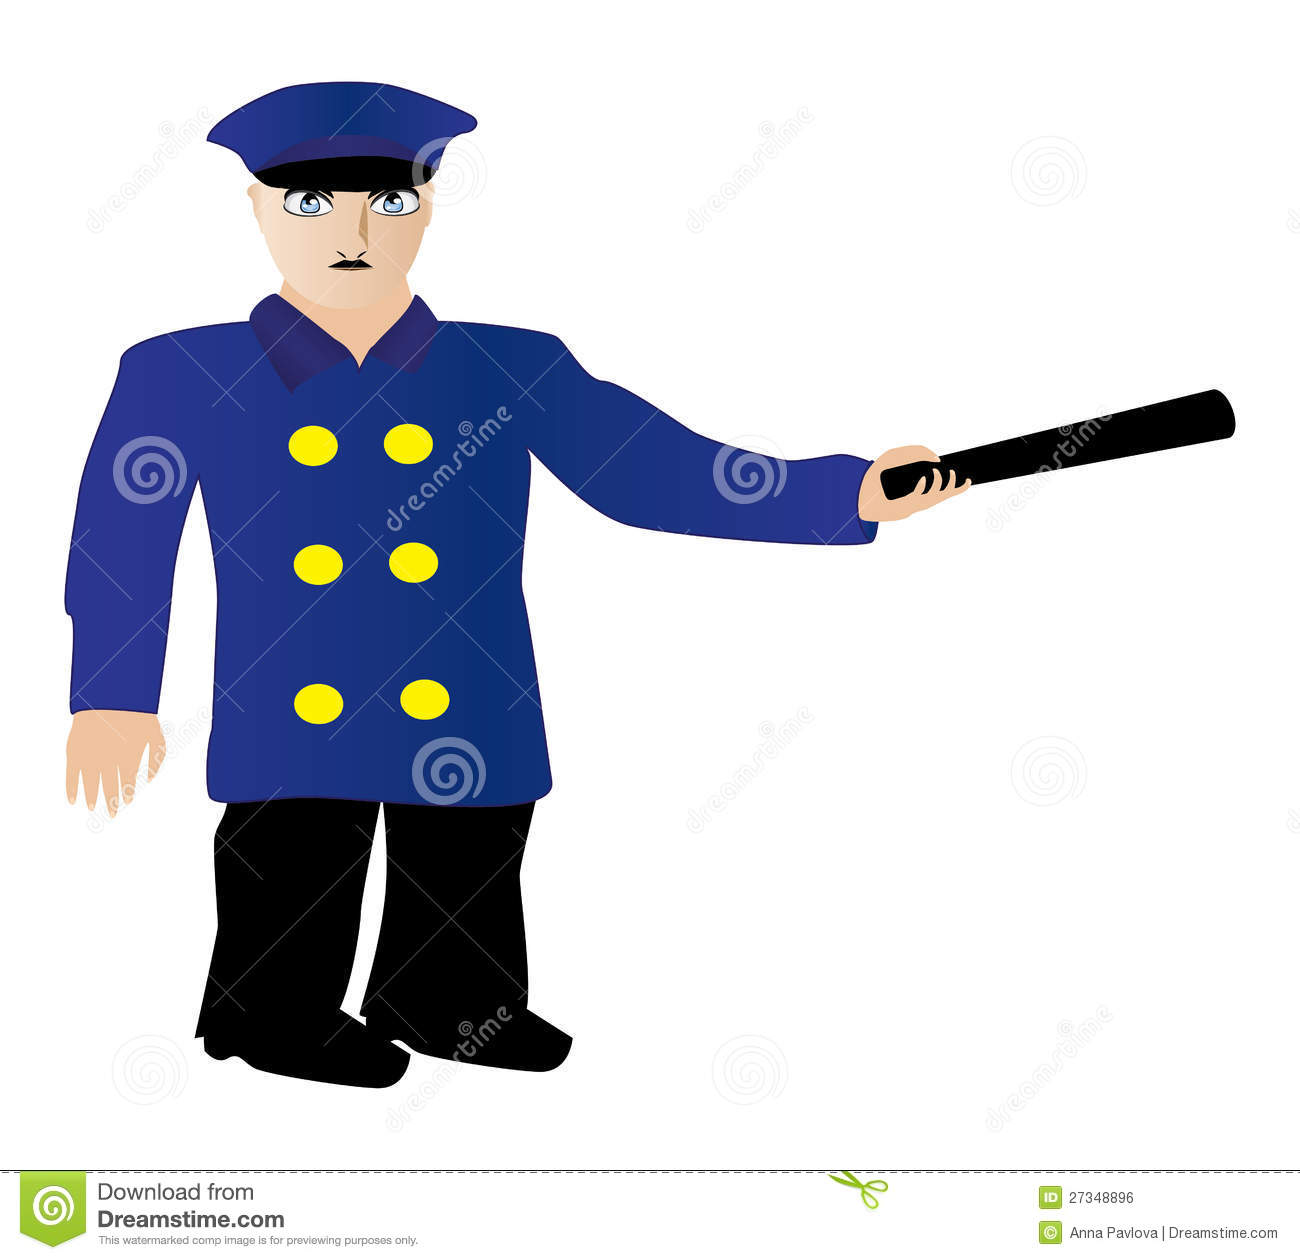 watchman clipart - photo #24